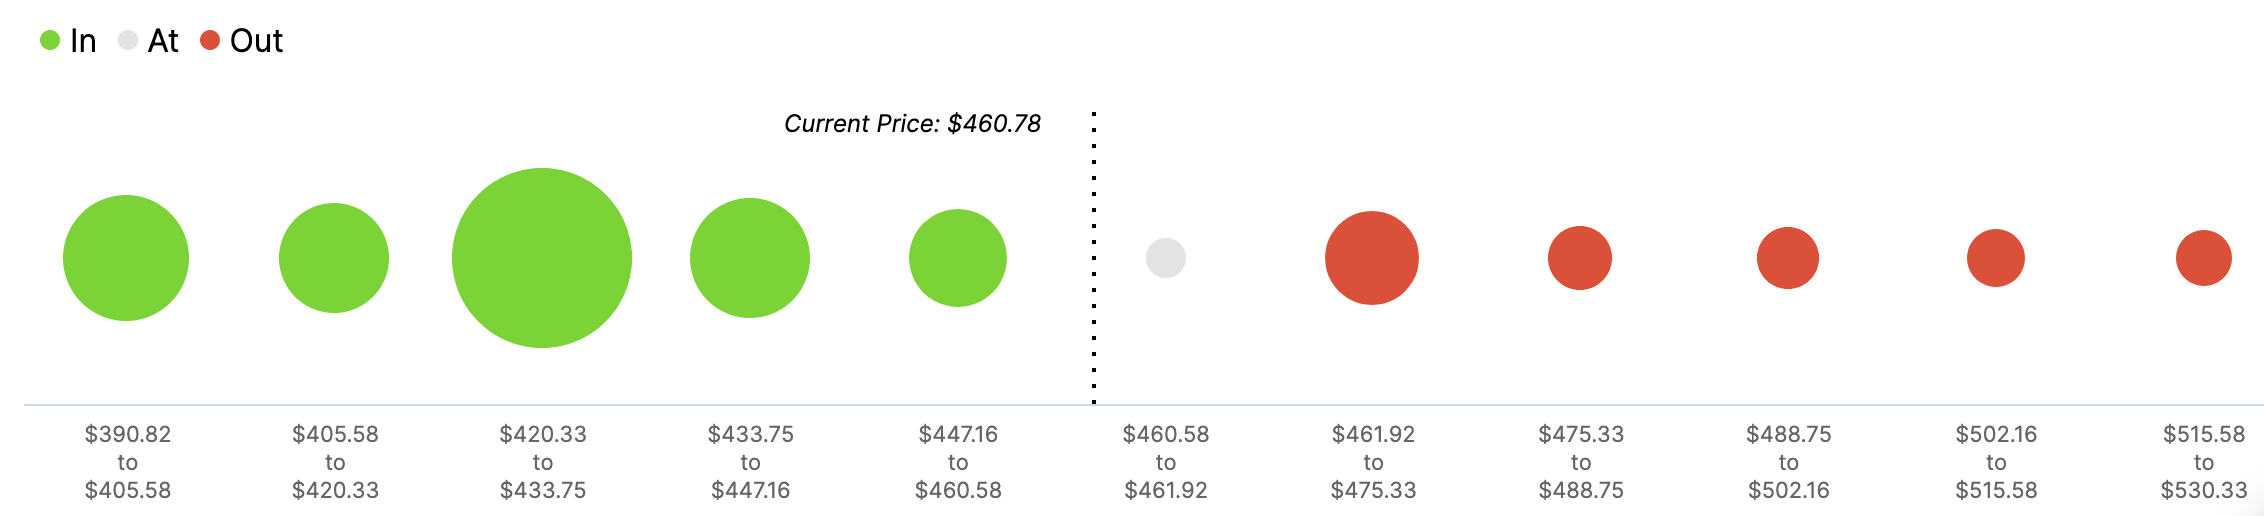 In/Out of the Money Around Price